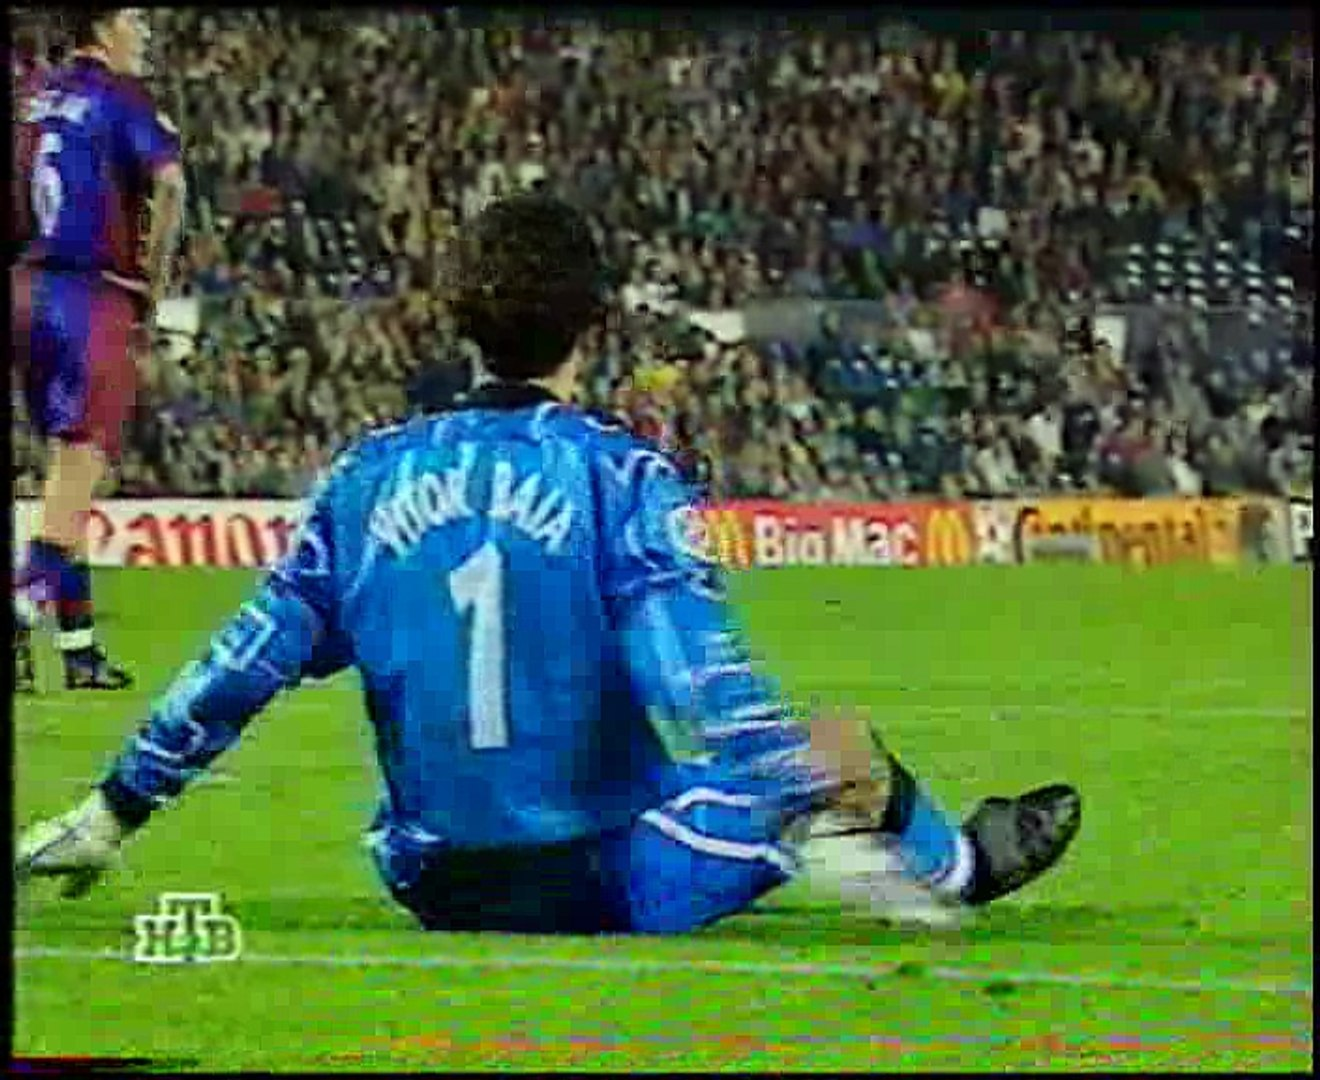 barcelona v dynamo kyiv 05 11 1997 champions league 1997 1998 video dailymotion barcelona v dynamo kyiv 05 11 1997 champions league 1997 1998